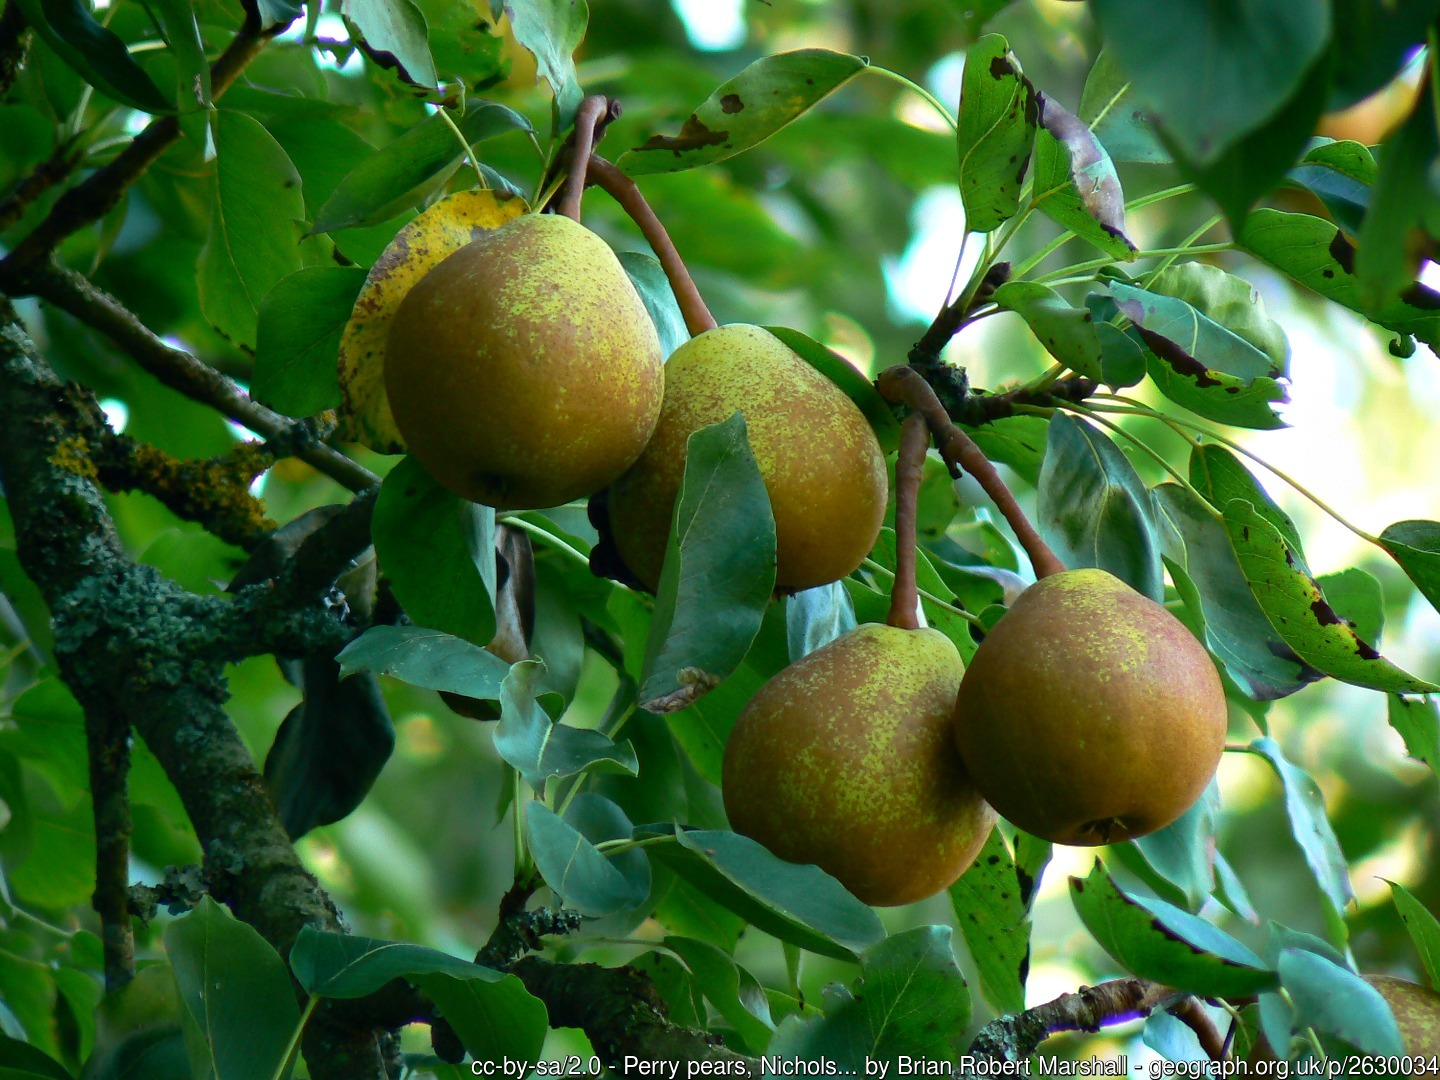 Small Perry pear group of 5 growing on tree